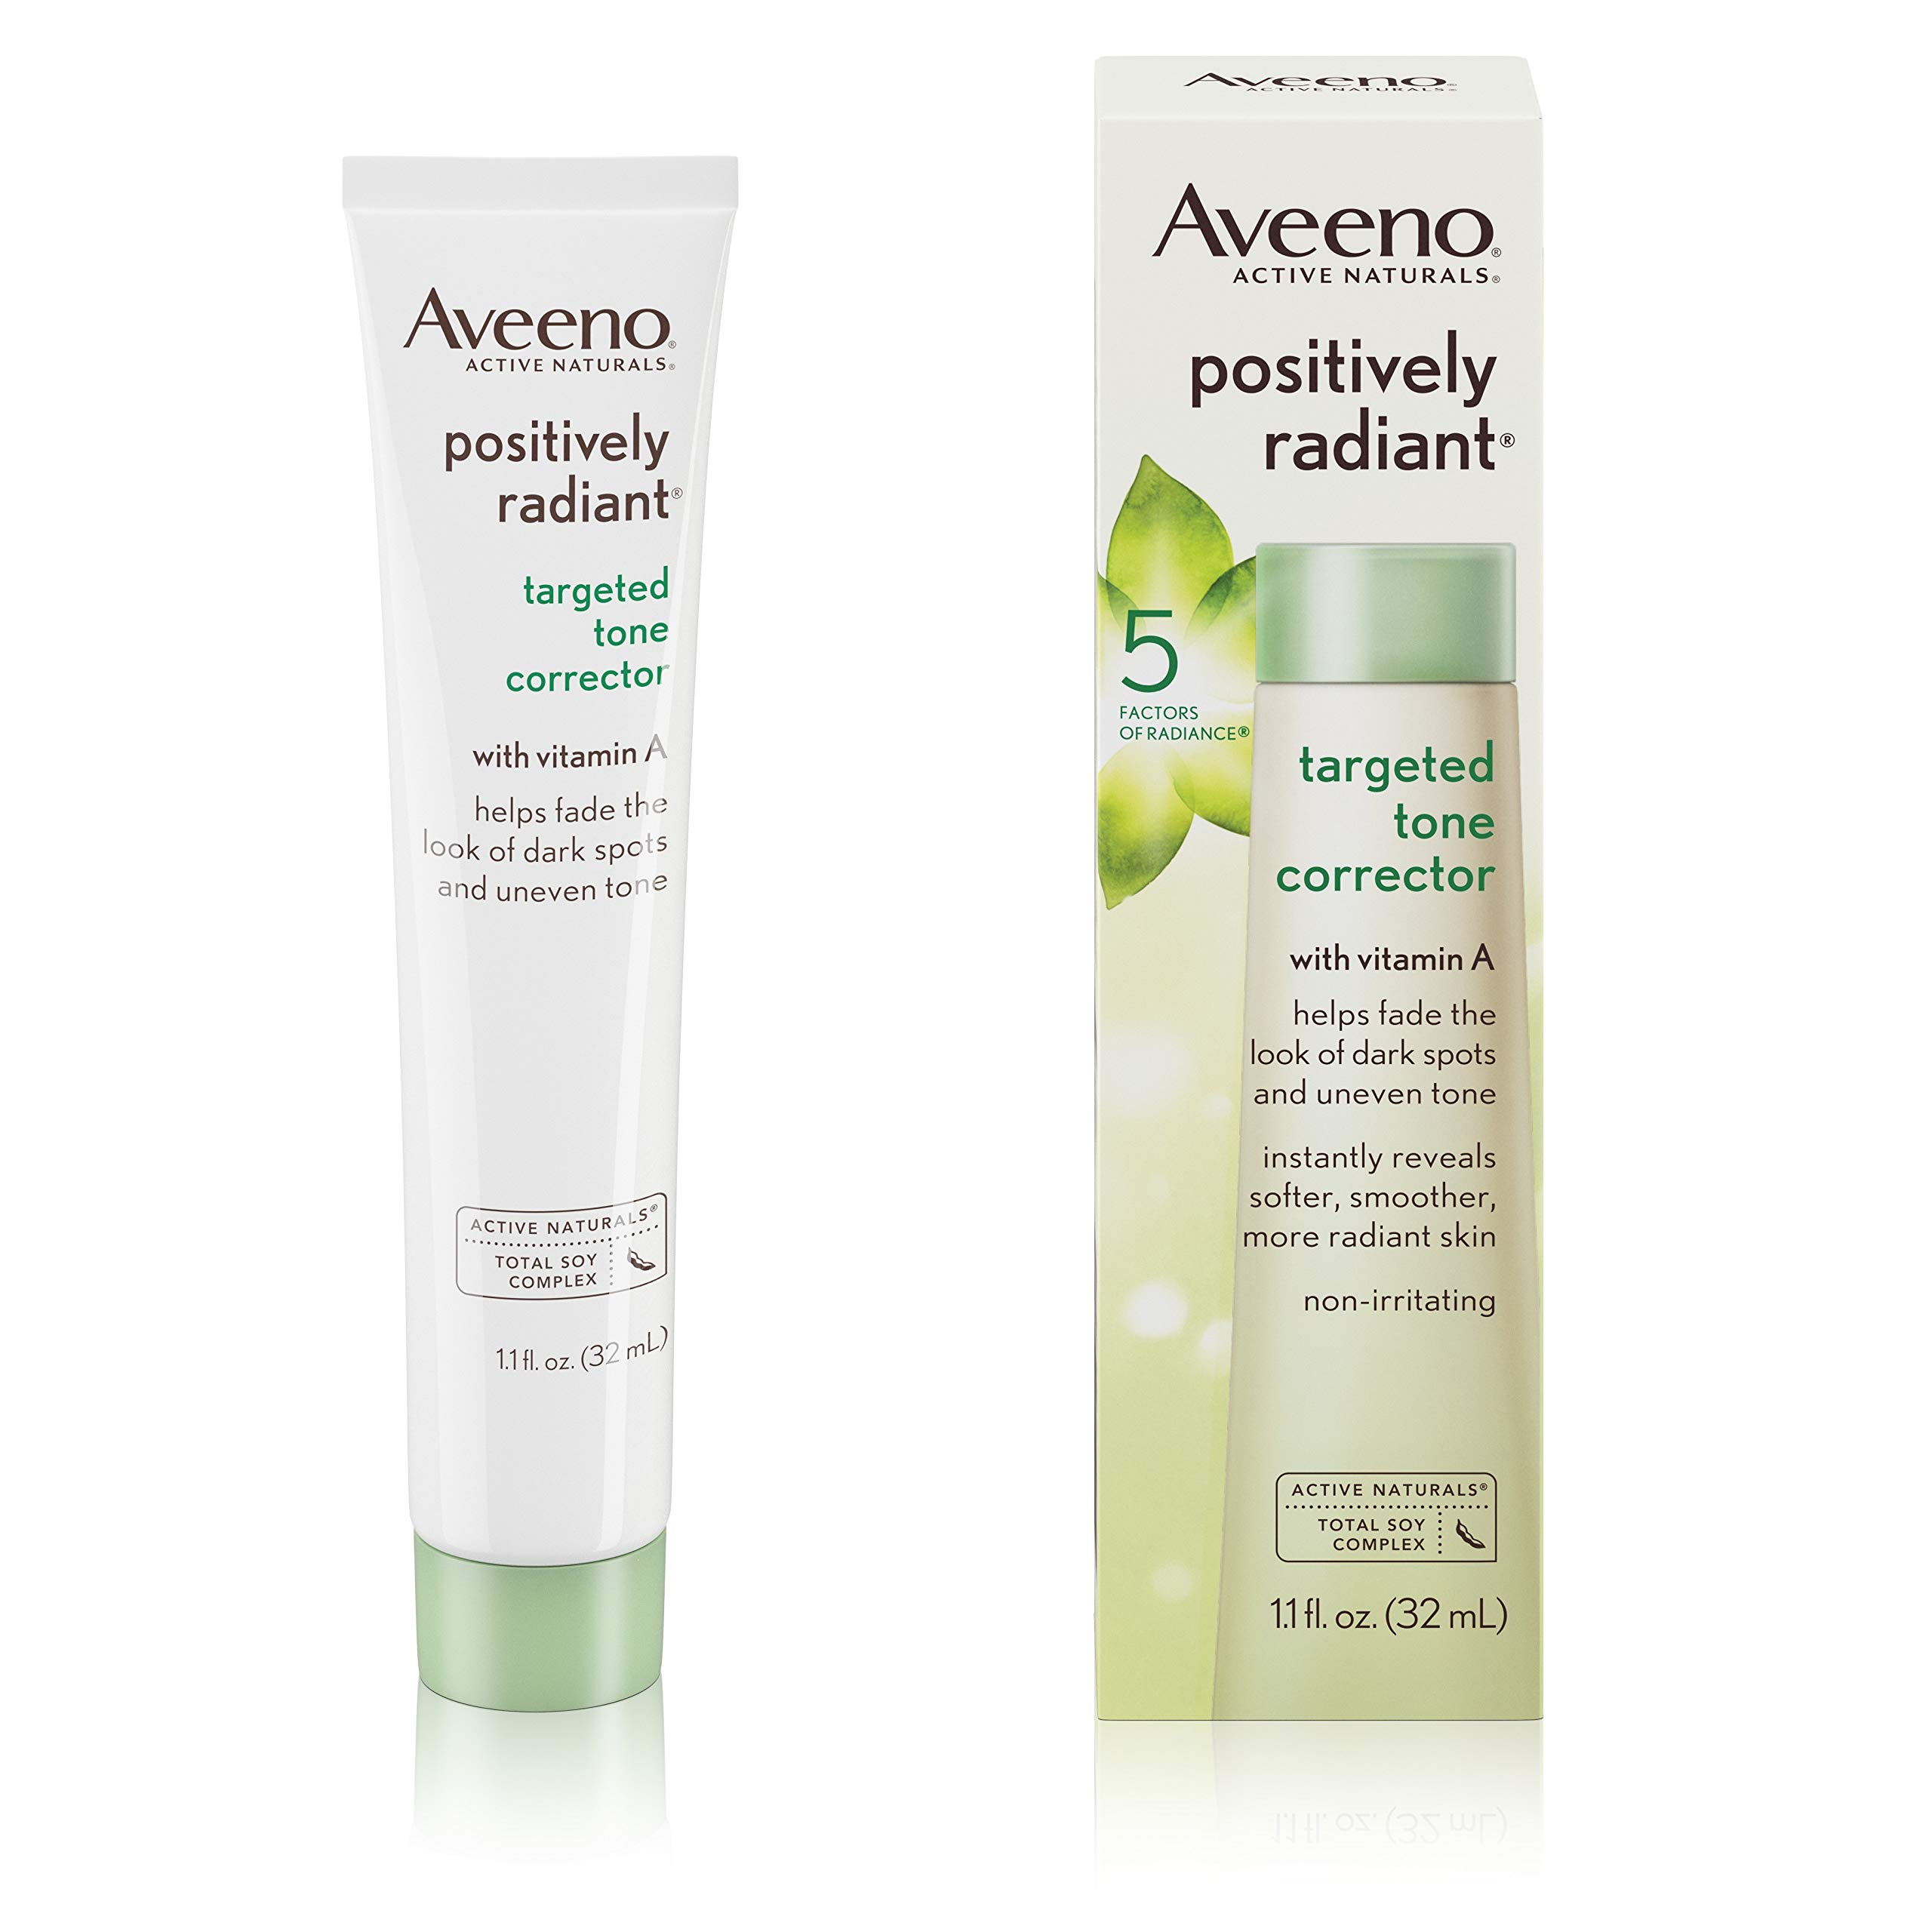 Aveeno Positively Radiant Targeted Corrector